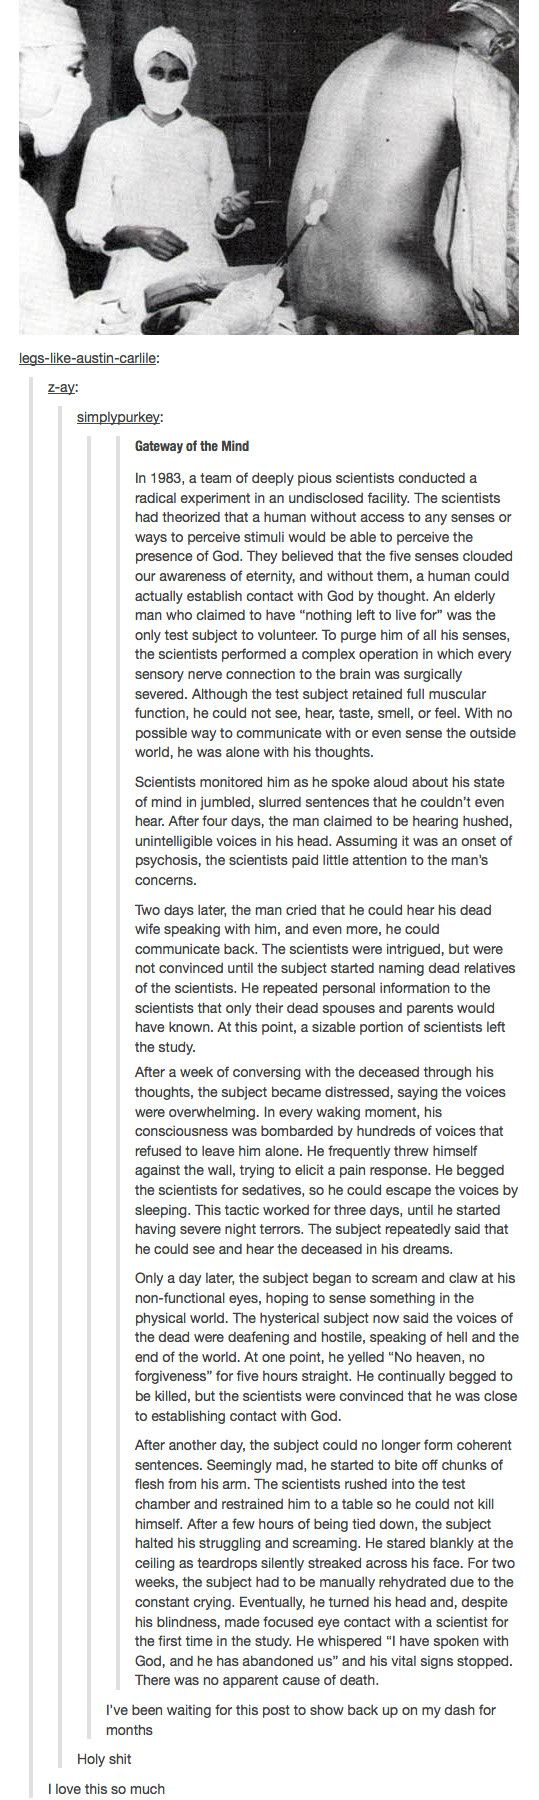 creepy...repining so i can research, anyone have any idea if this is fictional? EDIT: CREEPY PASTA CREEPING ME OUT! GREAT WRITING.